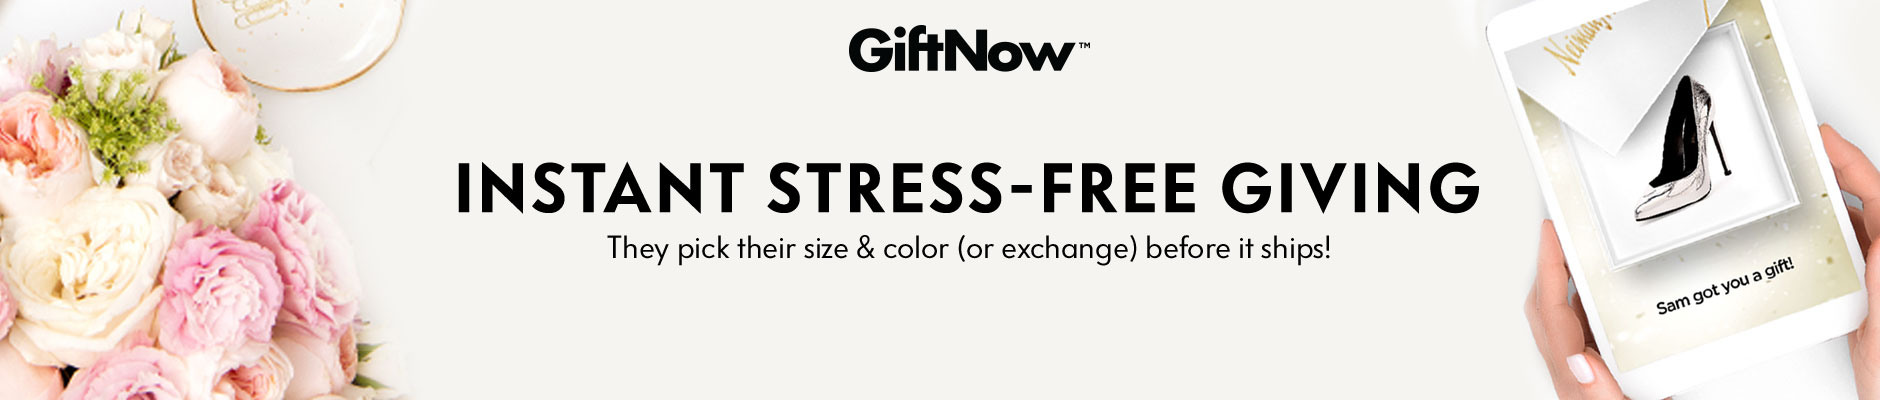 GiftNow Instant Stree-Free Giving - They pick their size & color (or change) before it ships!